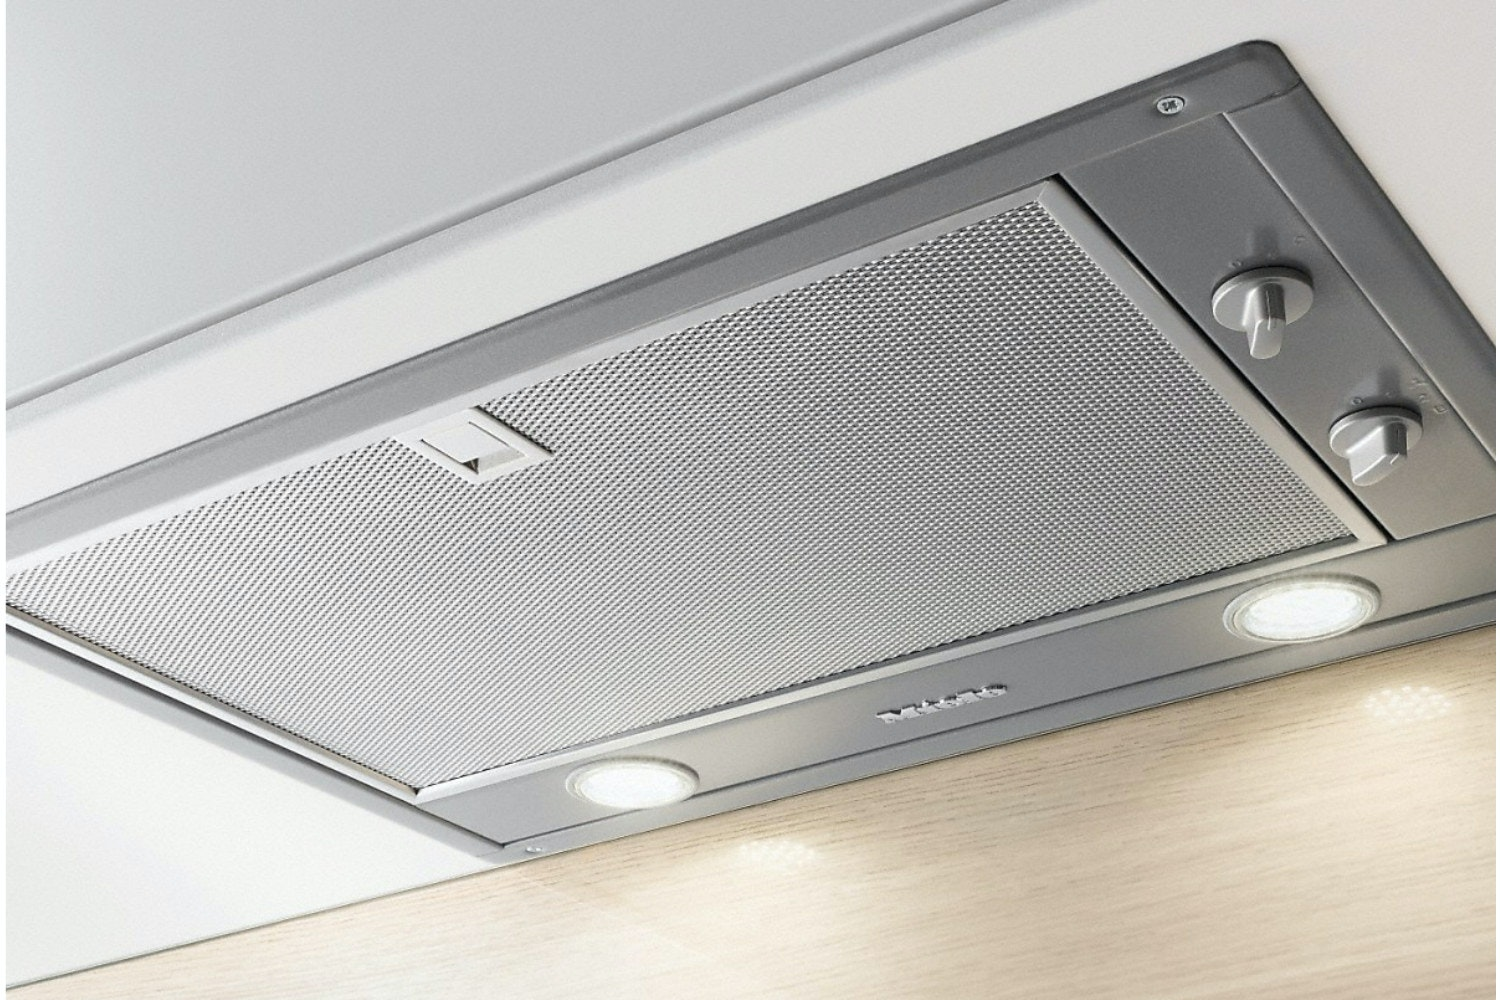 Miele DA 2450  Extractor unit   with energy-efficient LED lighting and rotary dials for easy use